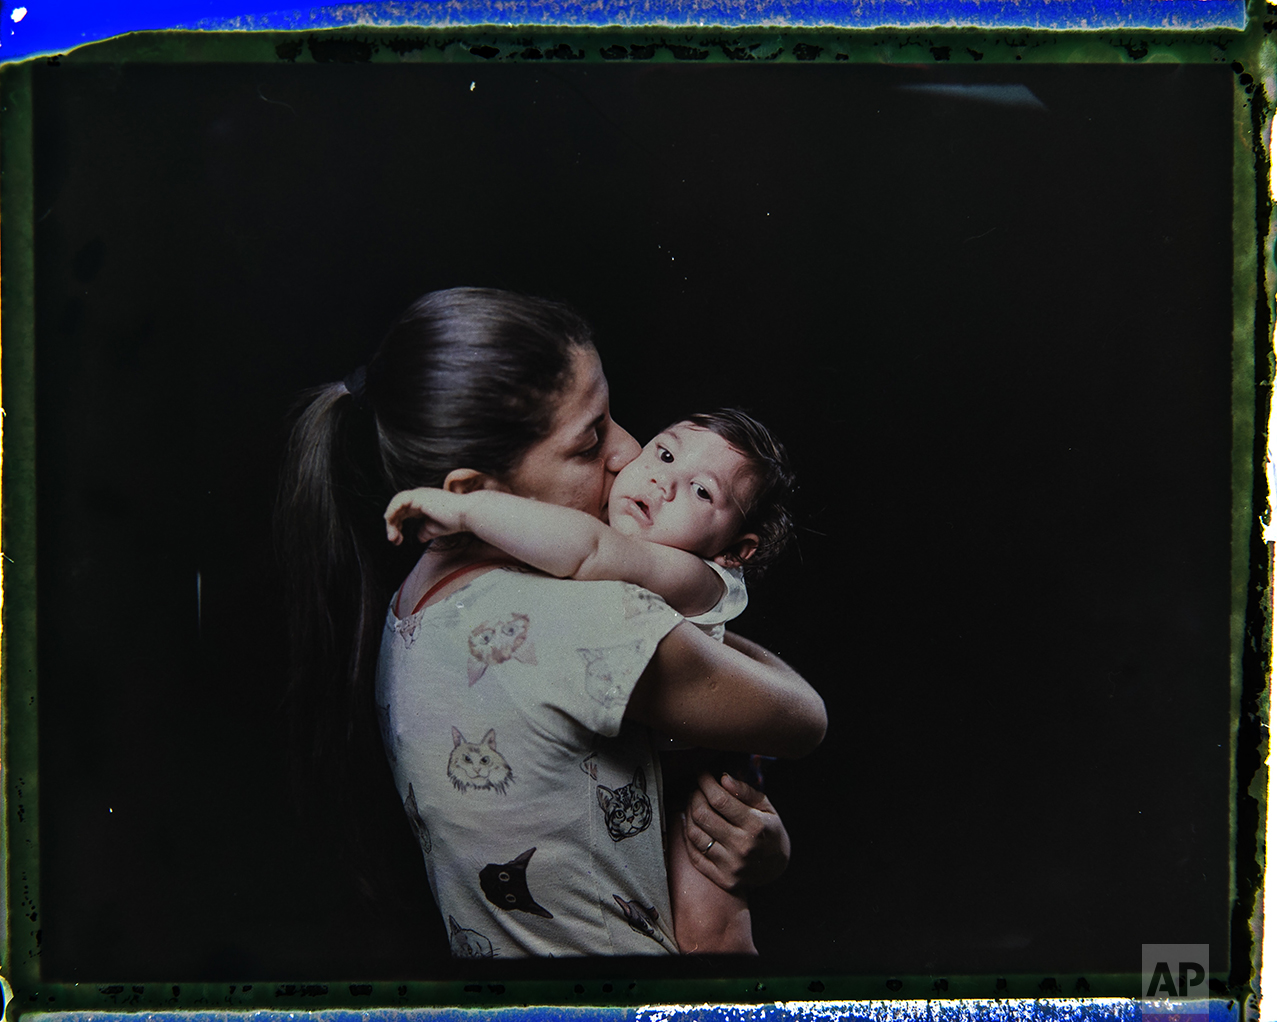 """In this Sept. 26, 2016 photo made from a negative recovered from instant film, Angelica Pereira kisses her daughter Luiza, who was born with microcephaly, one of many serious medical problems that can be caused by congenital Zika syndrome, during a portrait session in Santa Cruz do Capibaribe, Pernambuco state, Brazil. """"We are always chasing something. We have to drop everything else, all our chores, our homes,"""" said the 21-year-old. """"There are so many of us with children with special needs. (The government) is forgetting about that."""" (AP Photo/Felipe Dana)"""